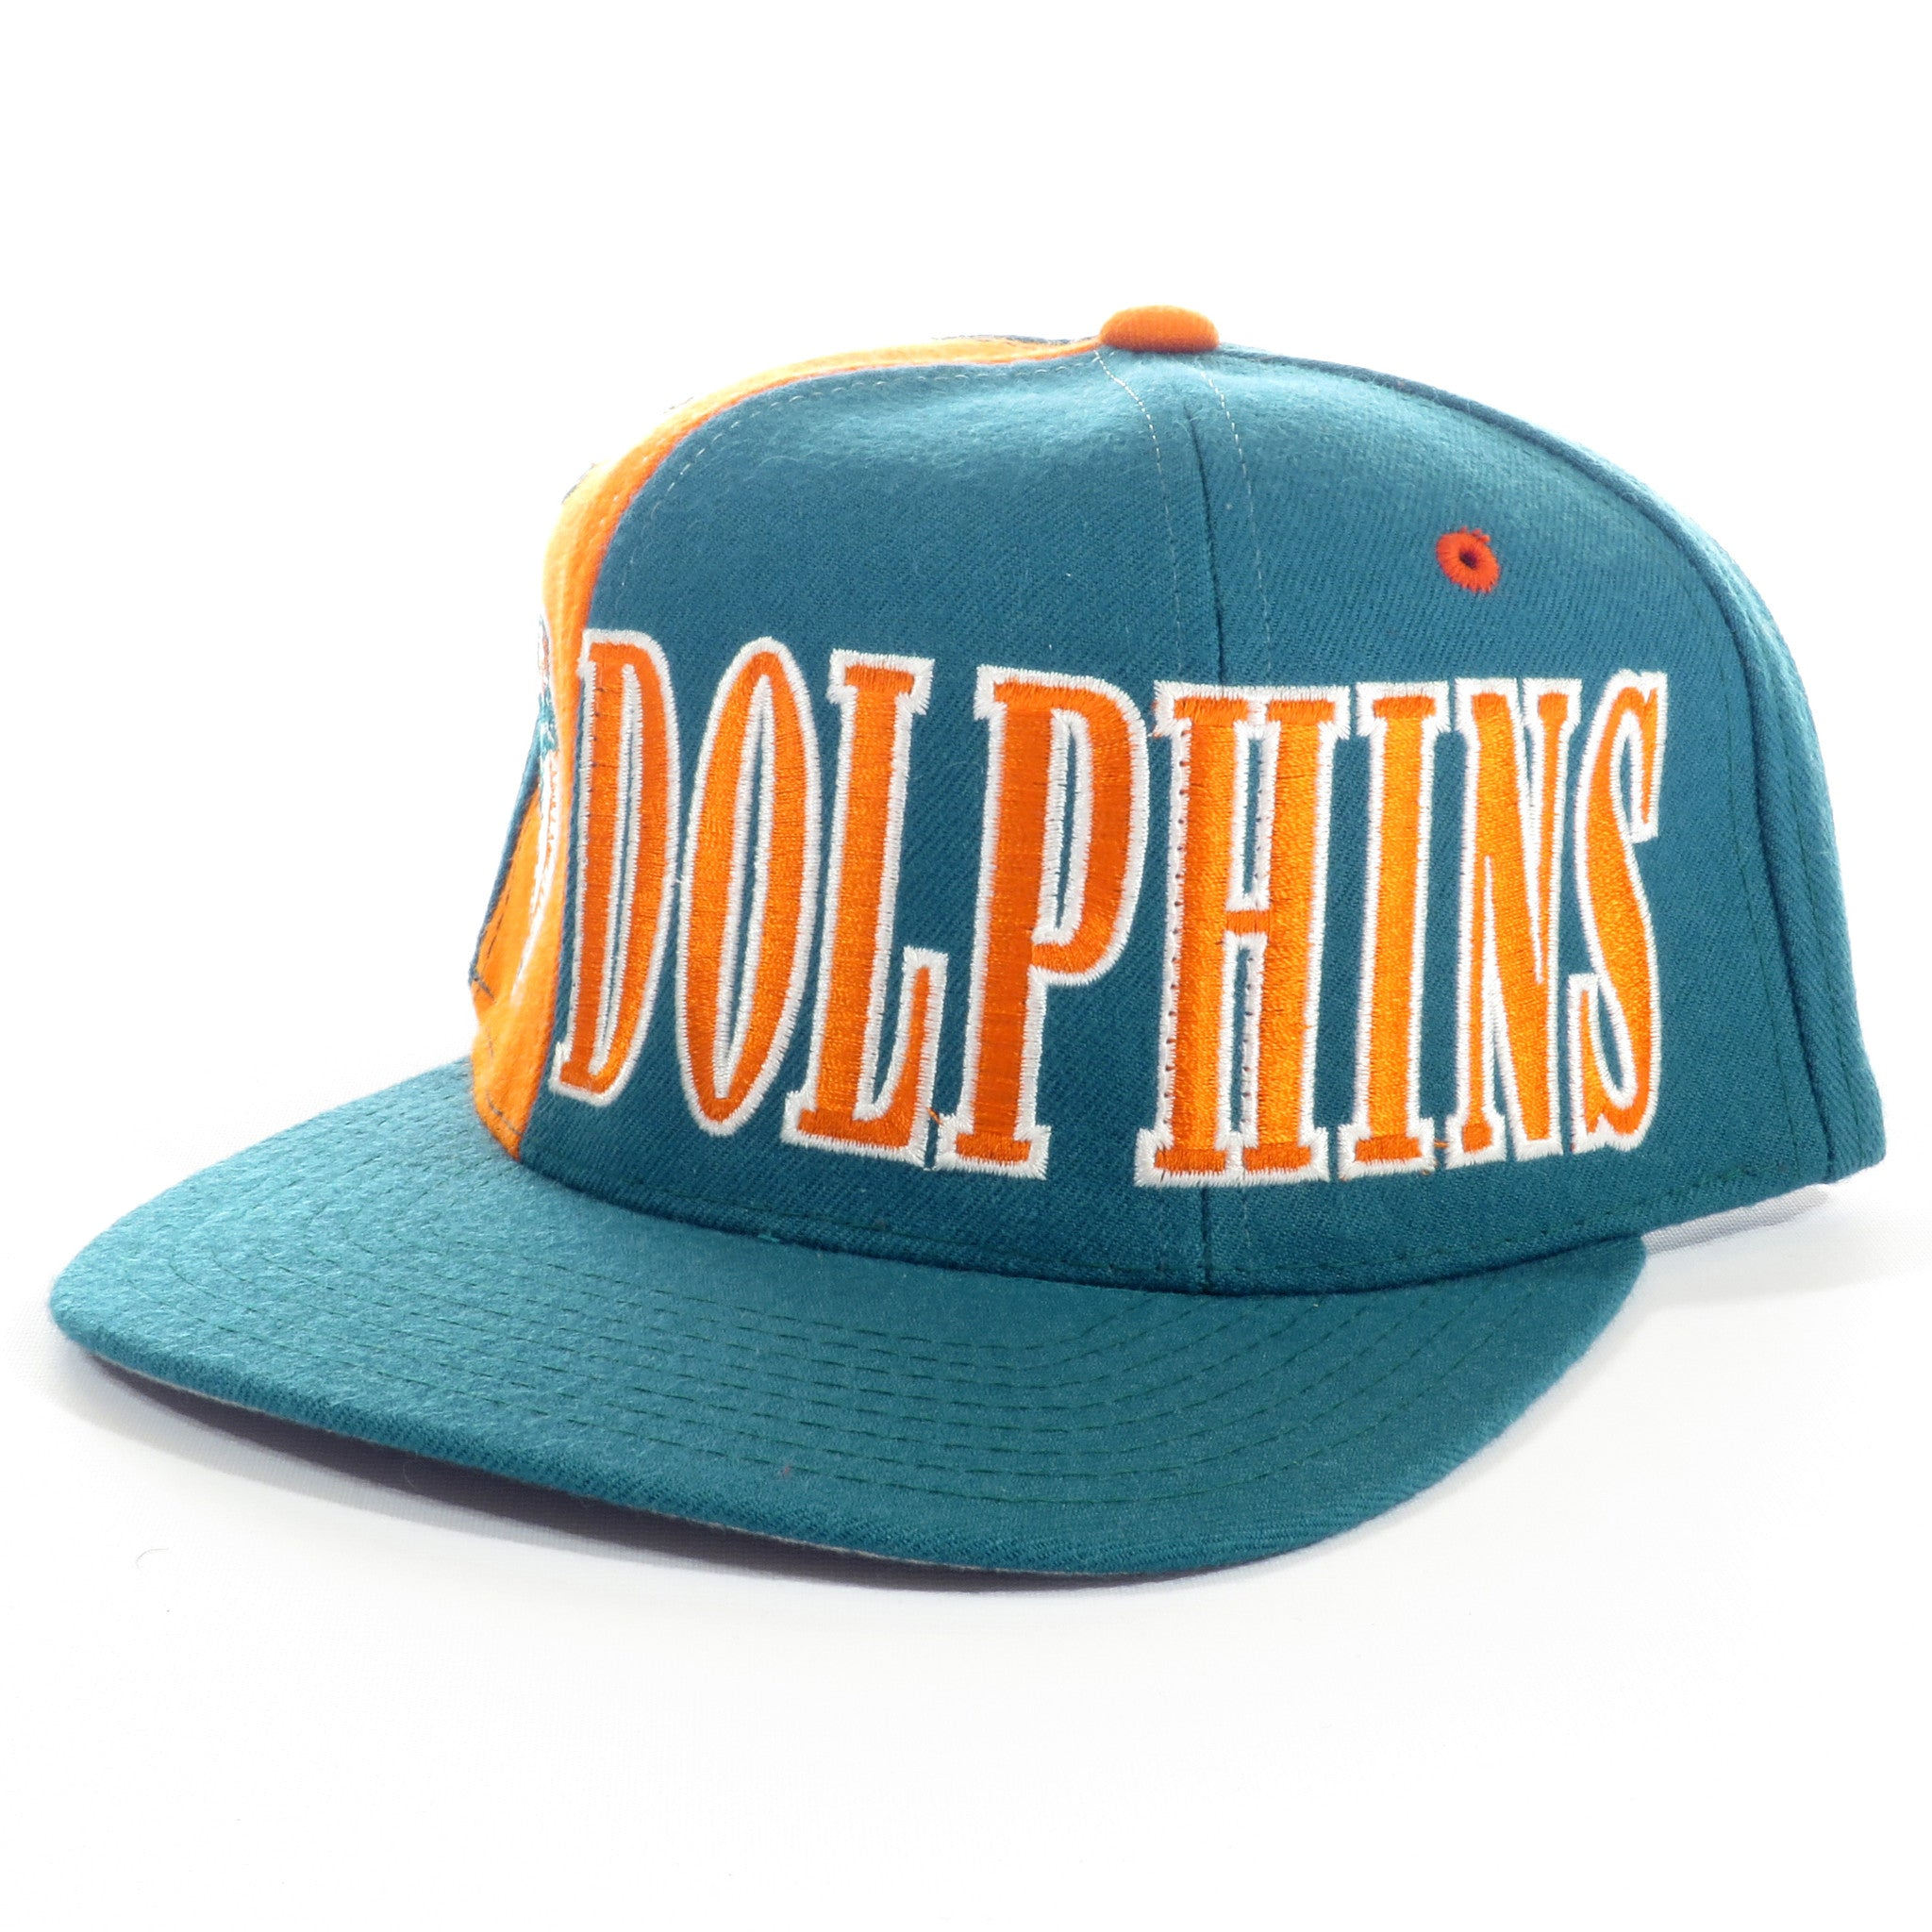 Miami Dolphins Starter Snapback Hat